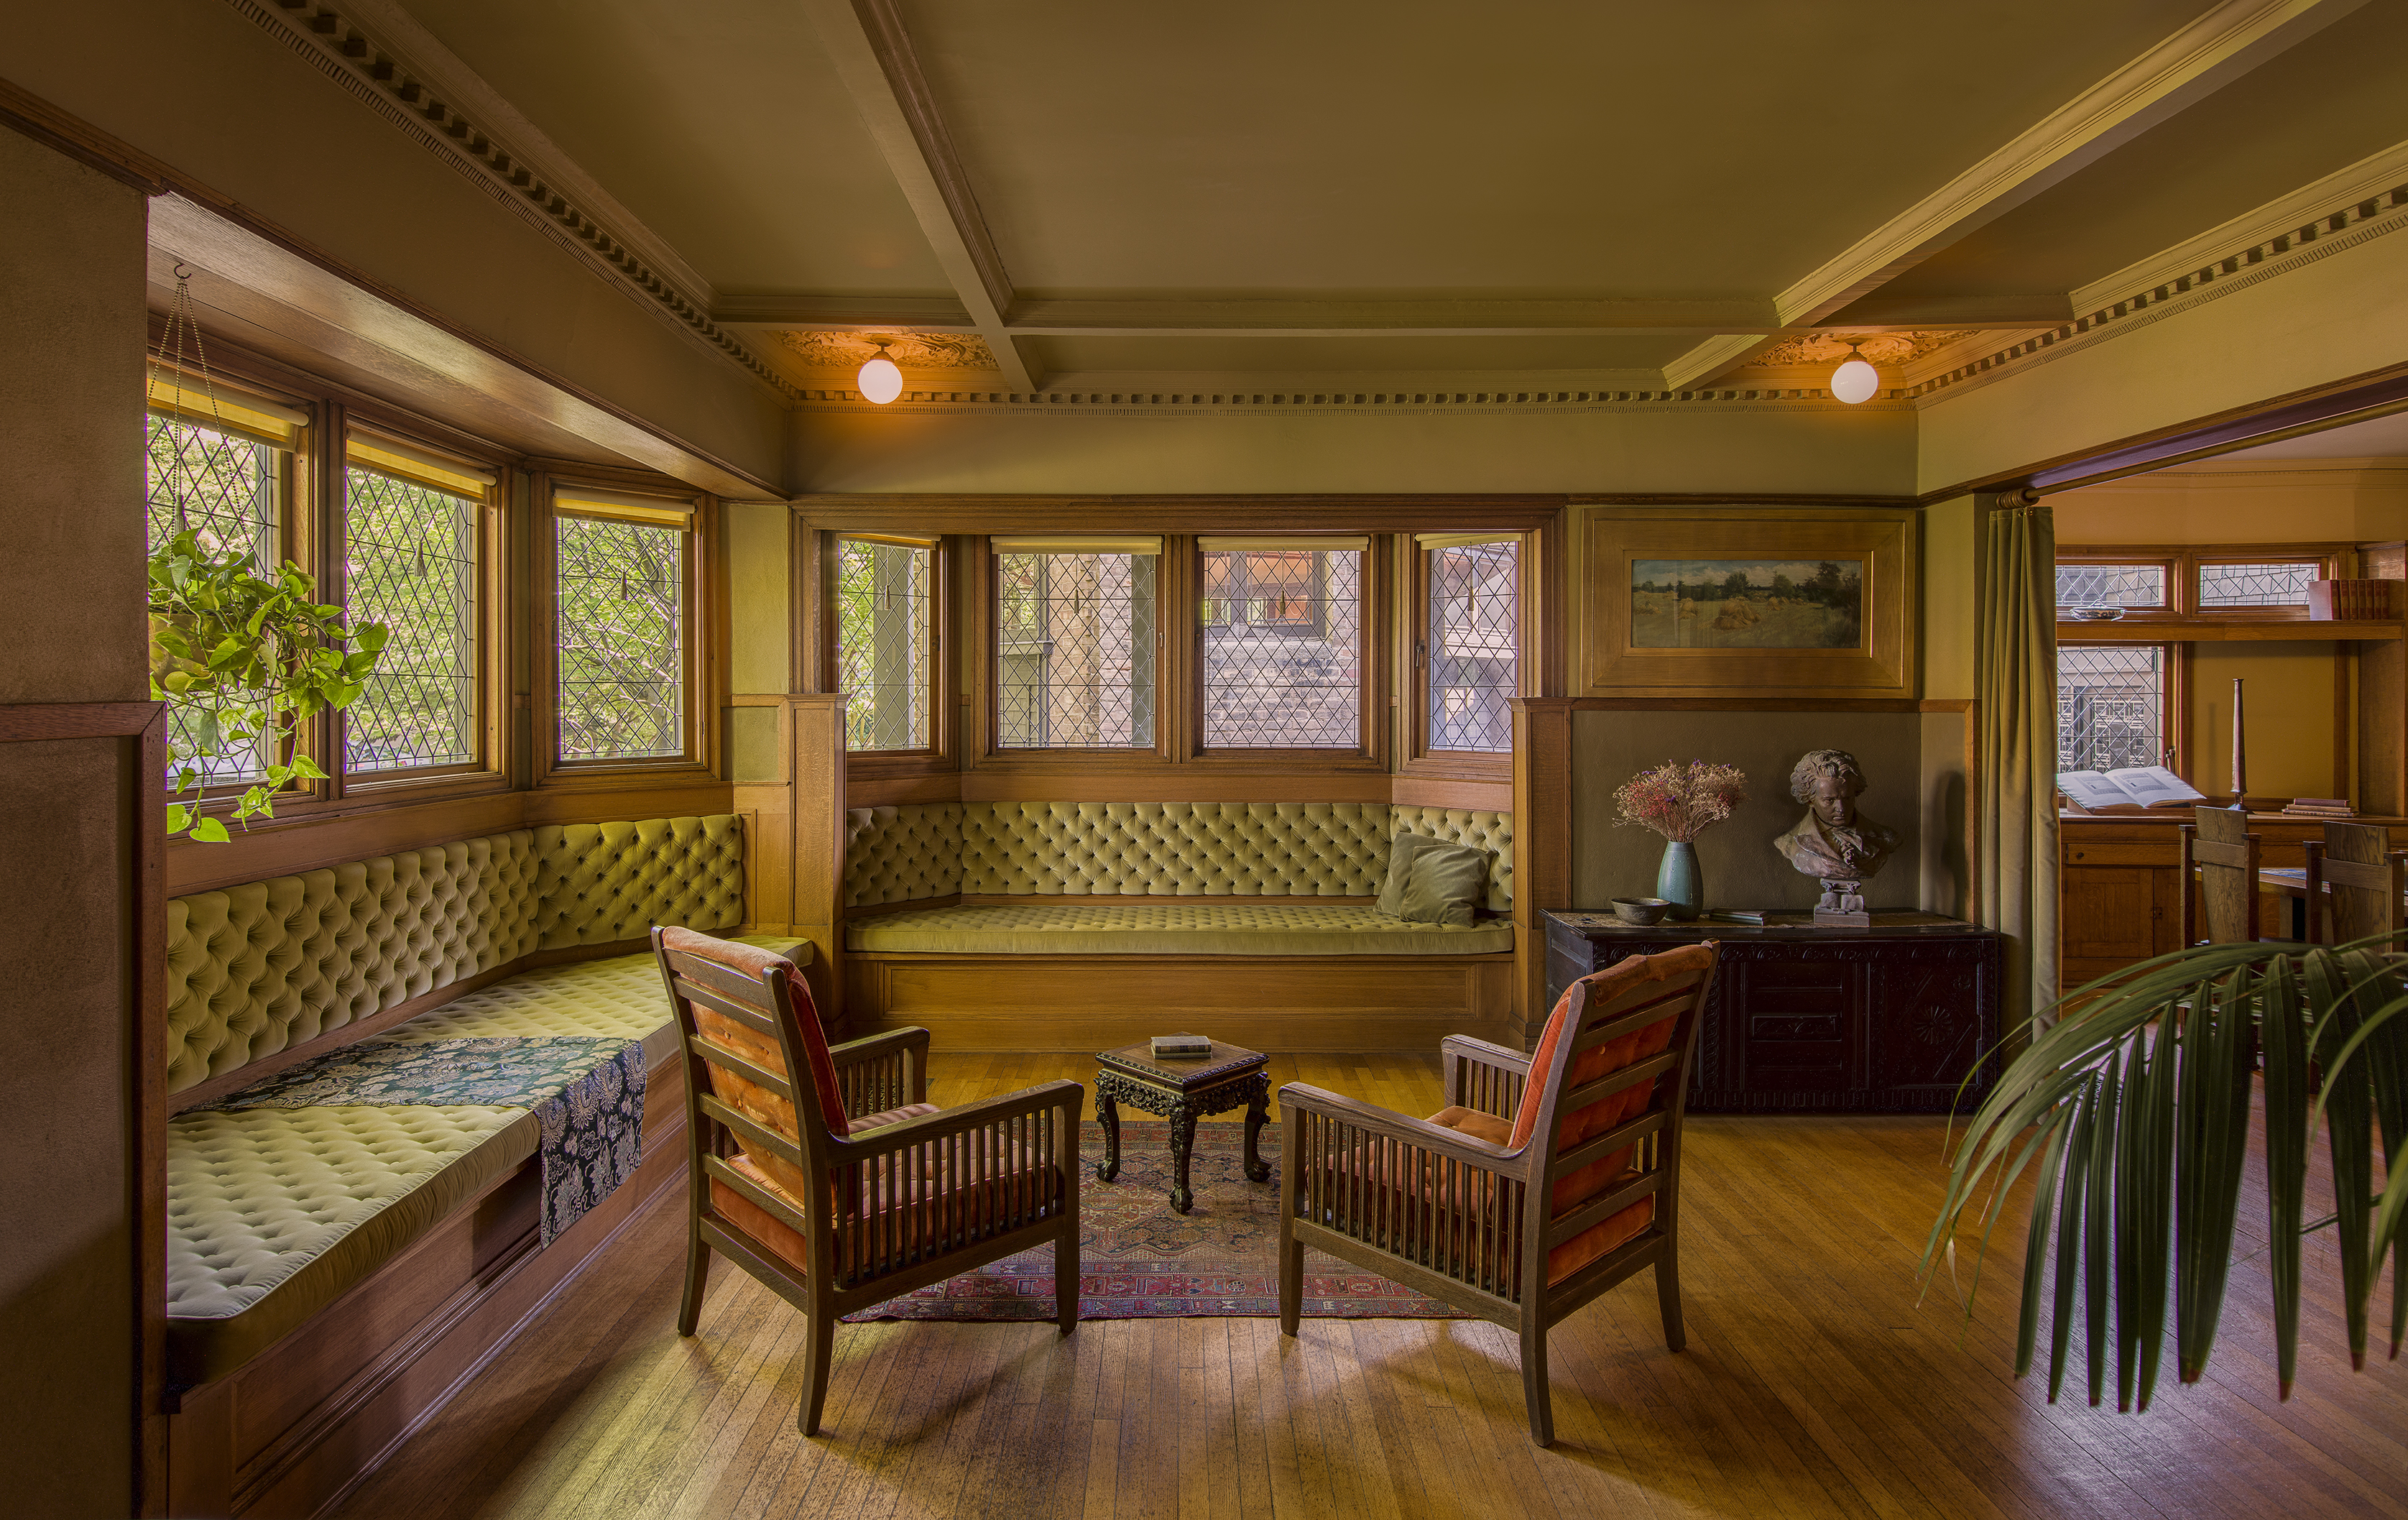 frank lloyd wright home interiors frank lloyd wright furniture designer curbed 23770